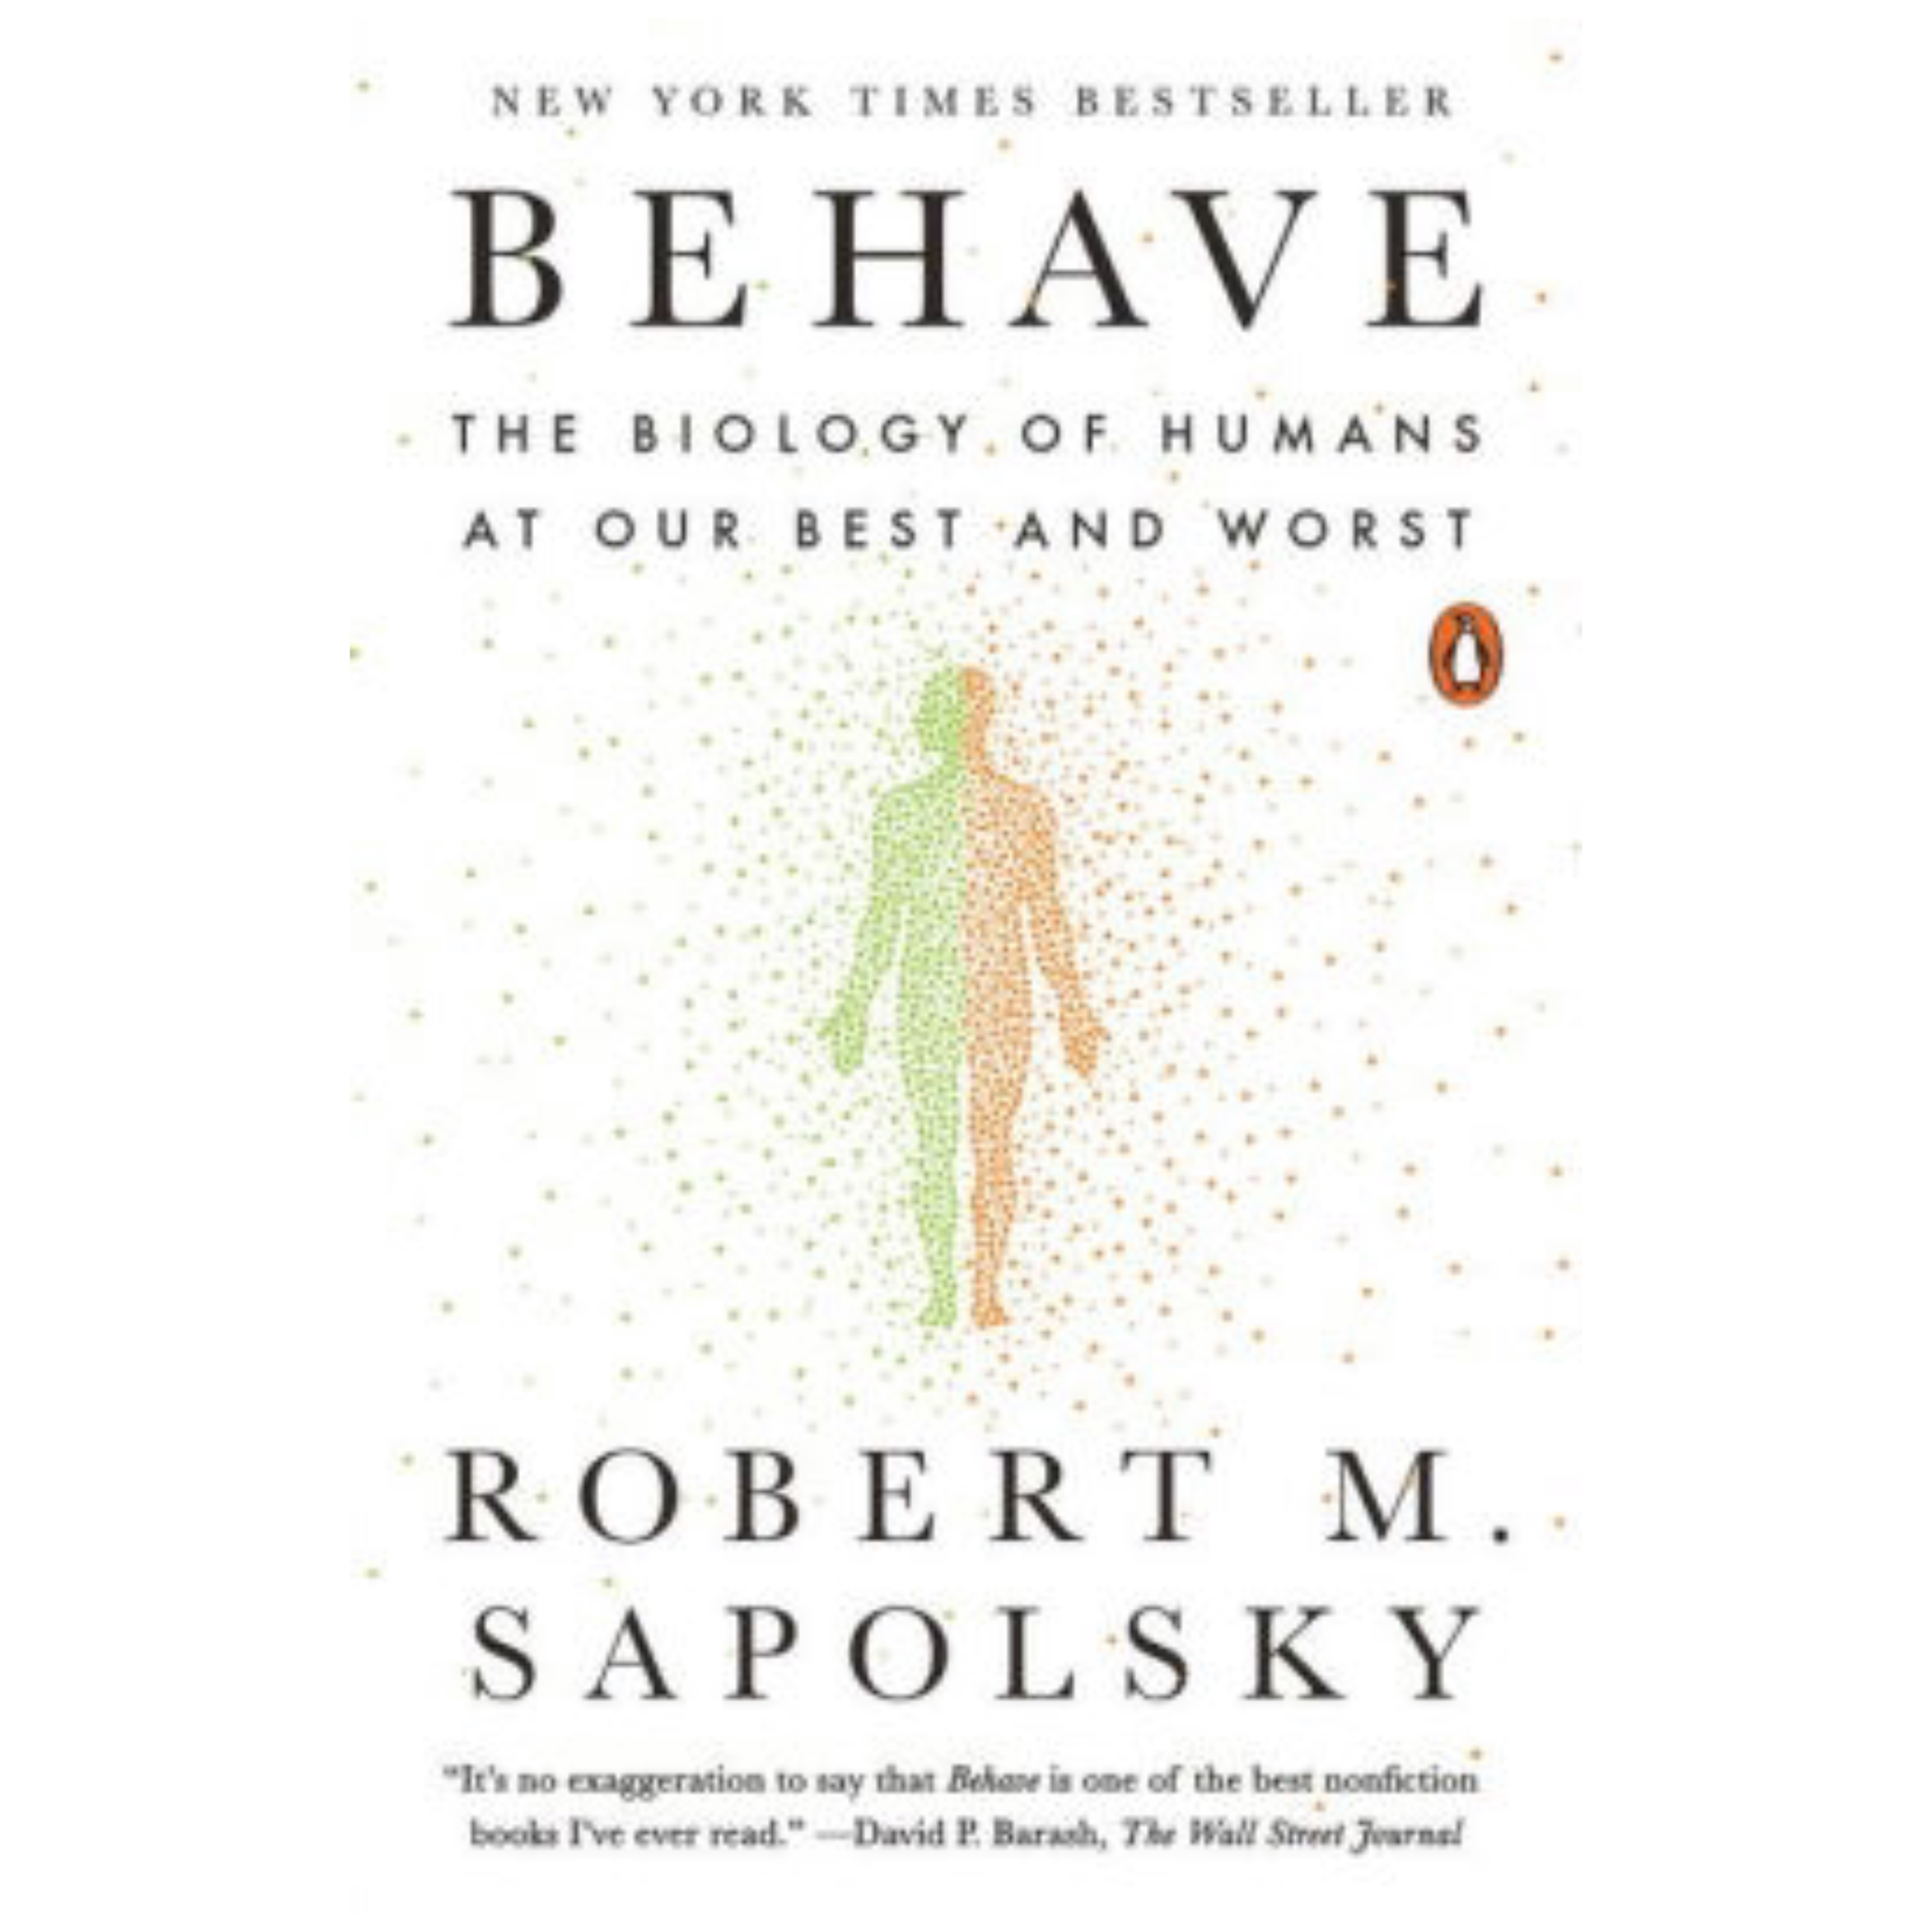 Behave: The Biology of Humans at Our Best and Worst by Robert Sapolsky | Cedar + Surf Must Read List